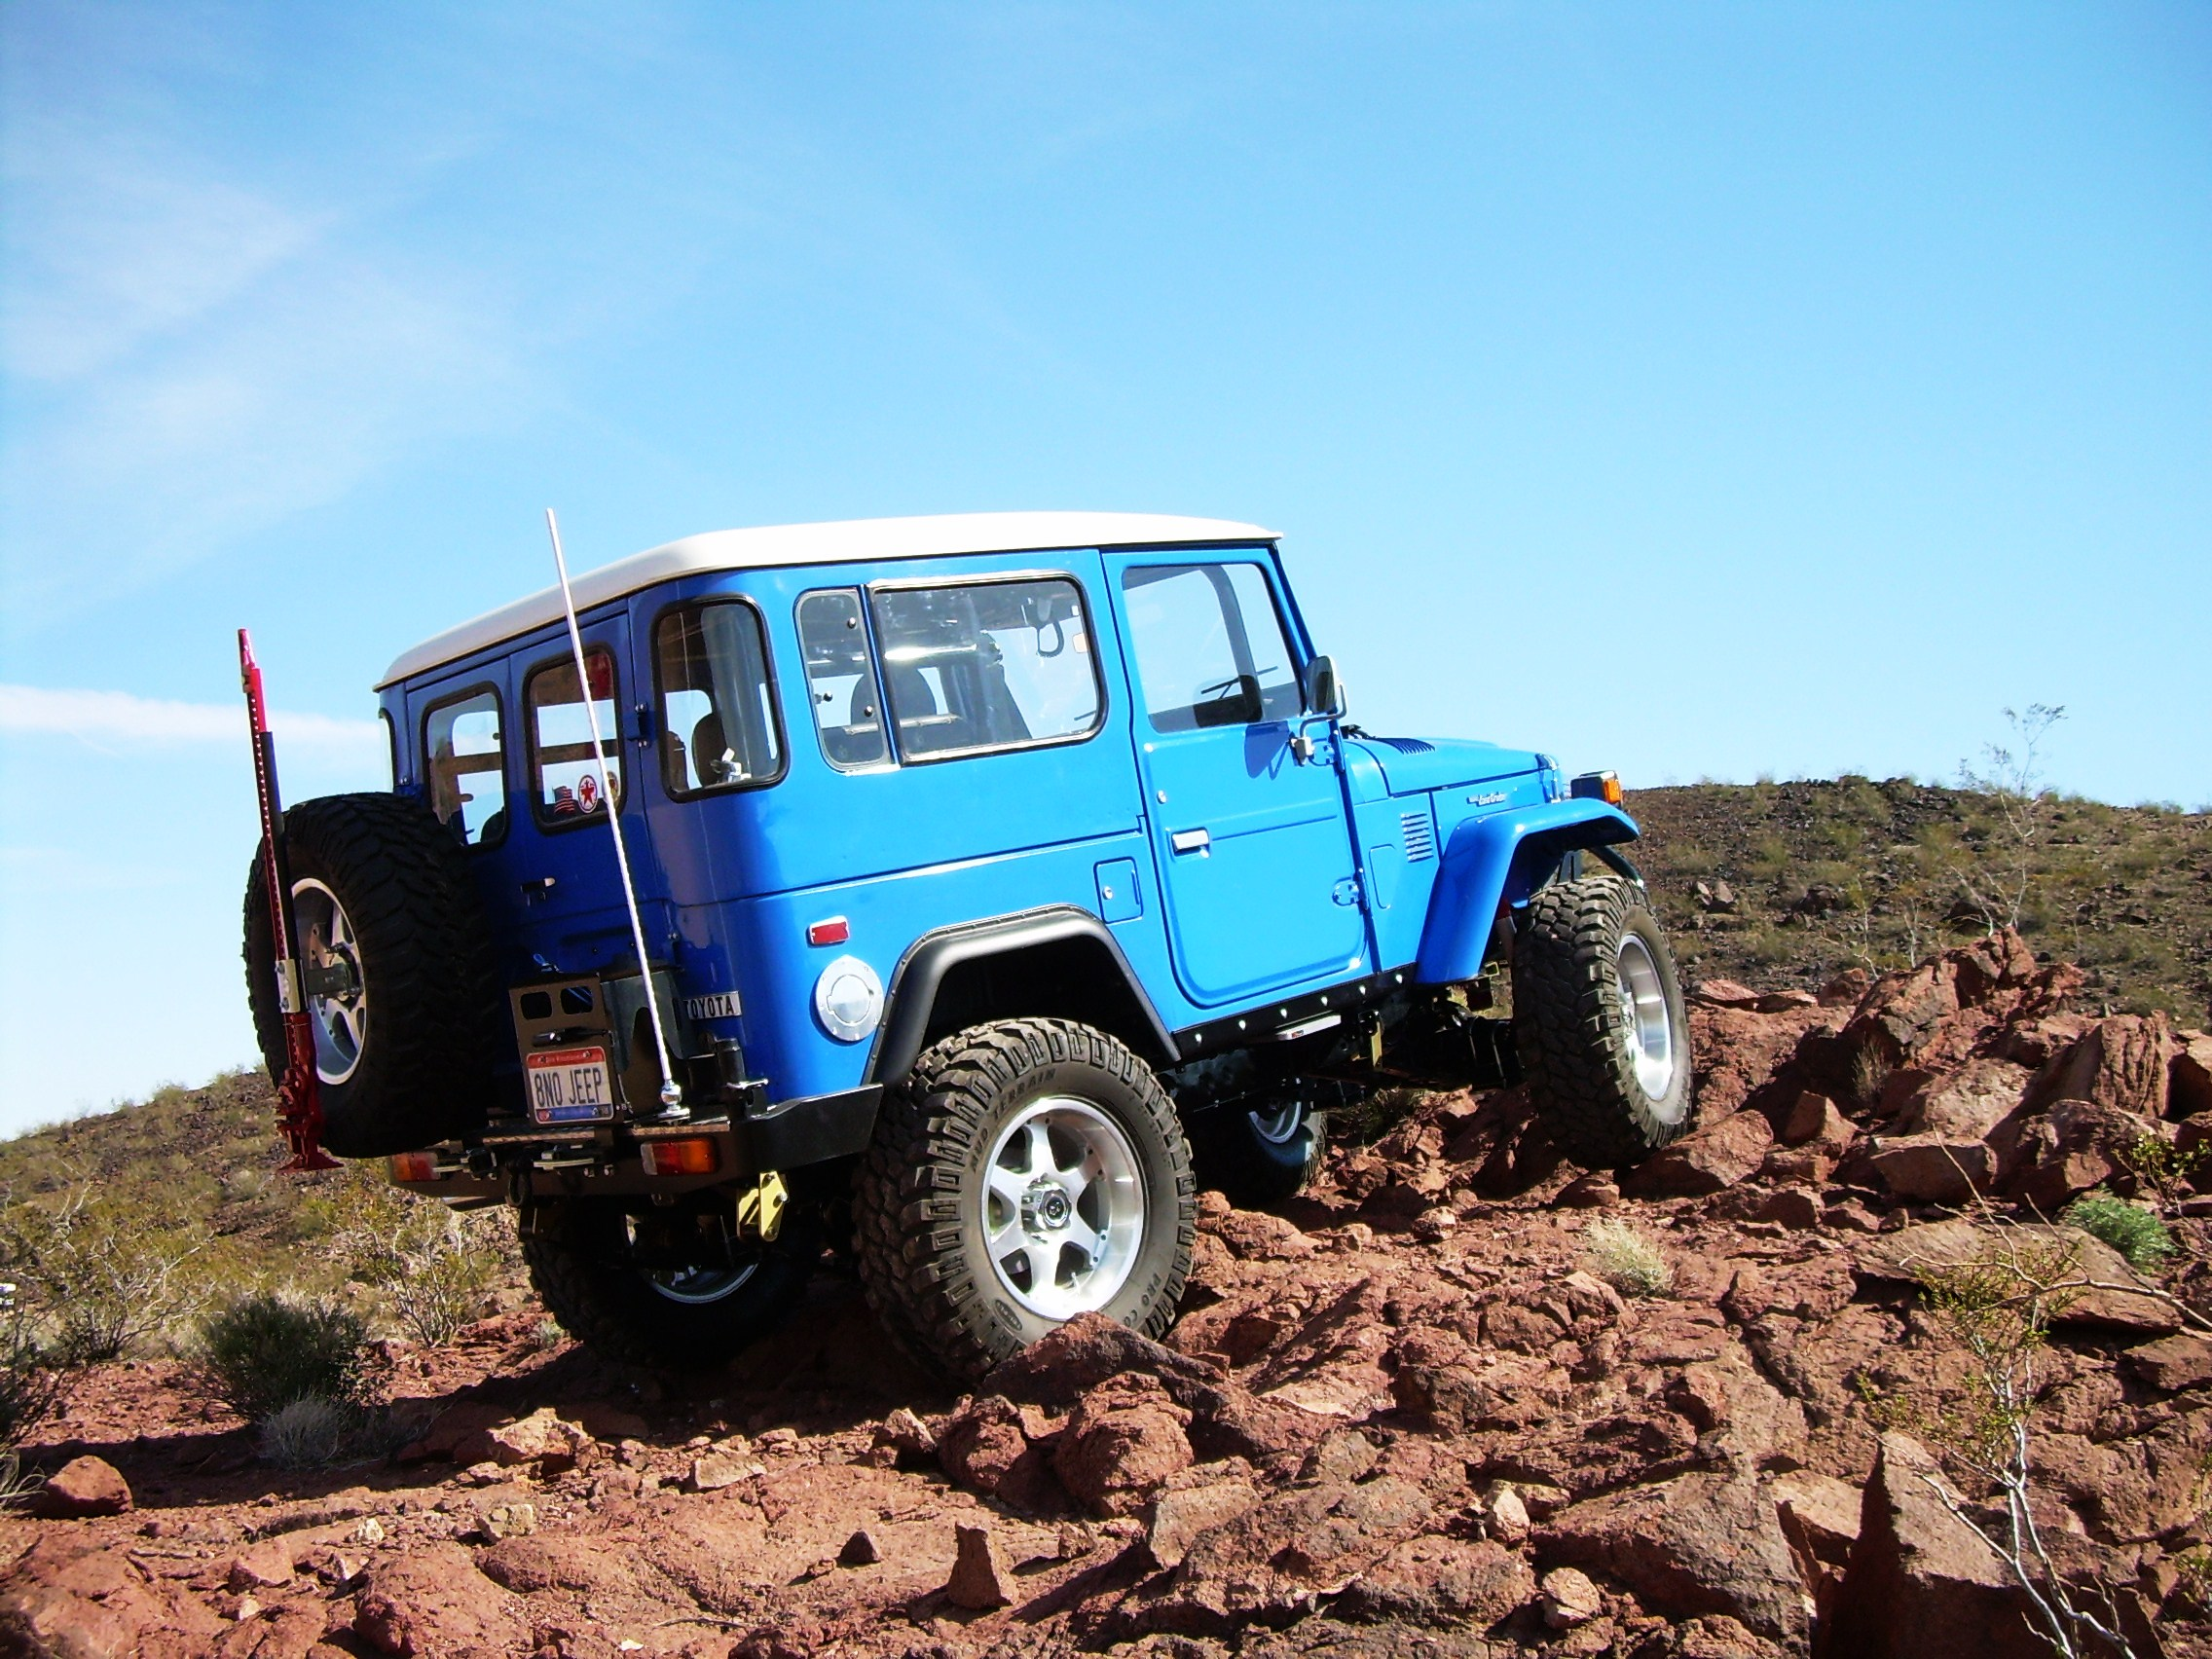 Land Cruiser Restoration – 1979 FJ40